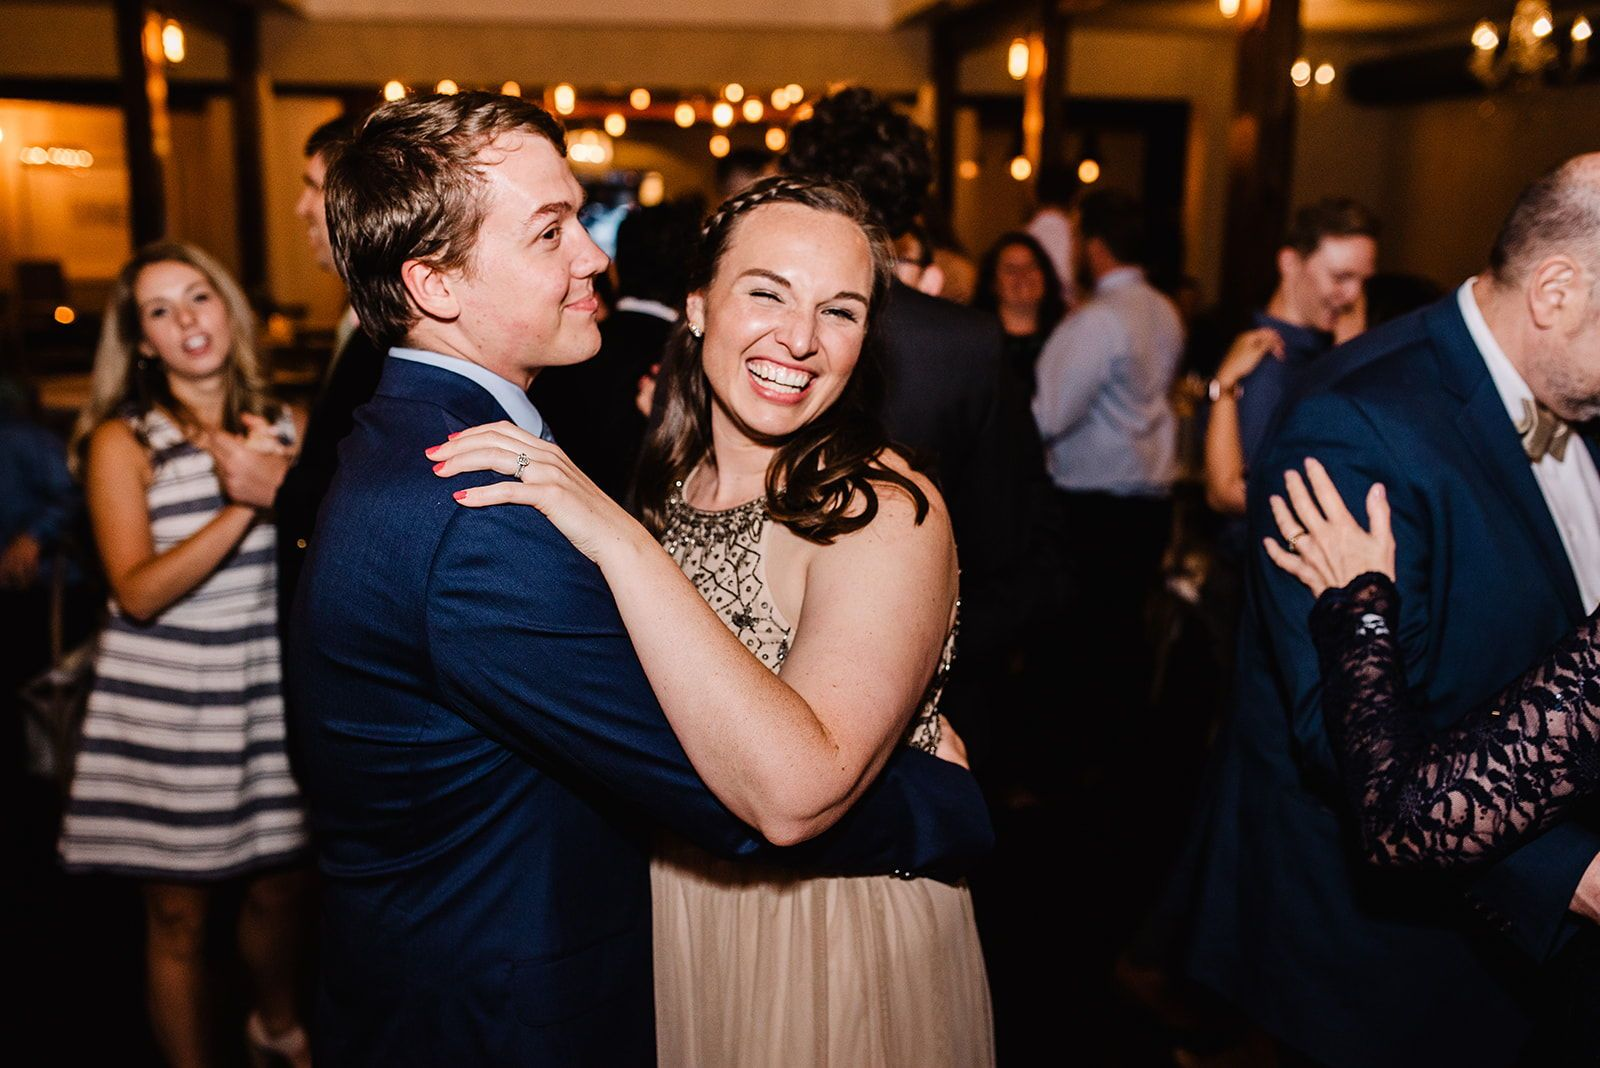 Reception Details Dancing Family Friends Partying Mother Son Dance Father Bride Dance In 2020 Wedding Reception Music Funny Wedding Photos Mother Son Dance